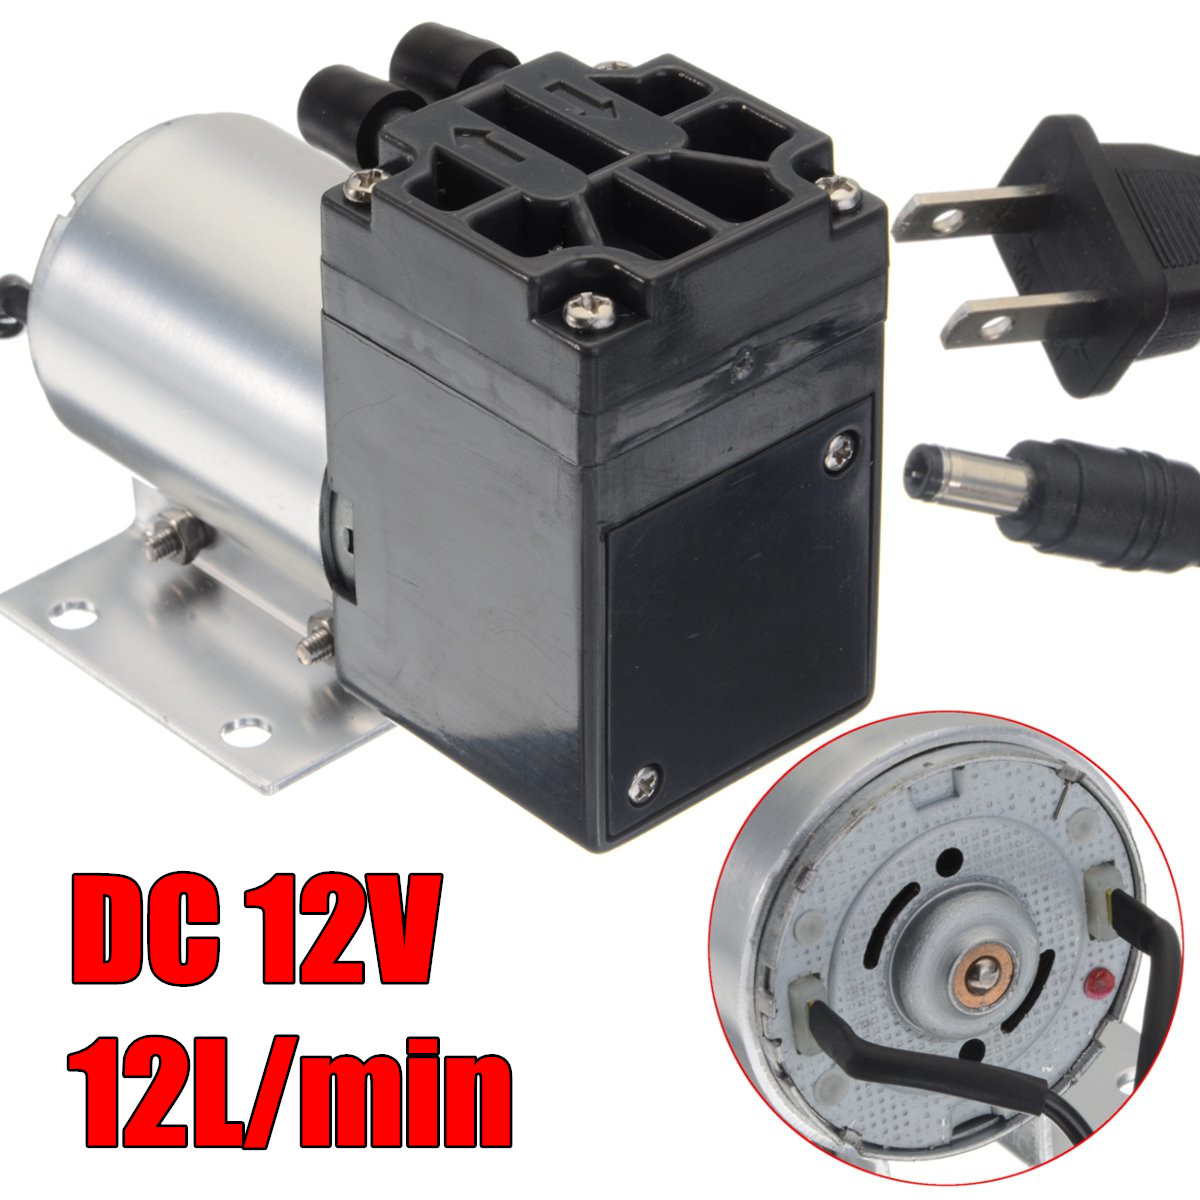 DC 12V mini vacuum pump Negative pressure suction suction pump 12L/min 120kpa